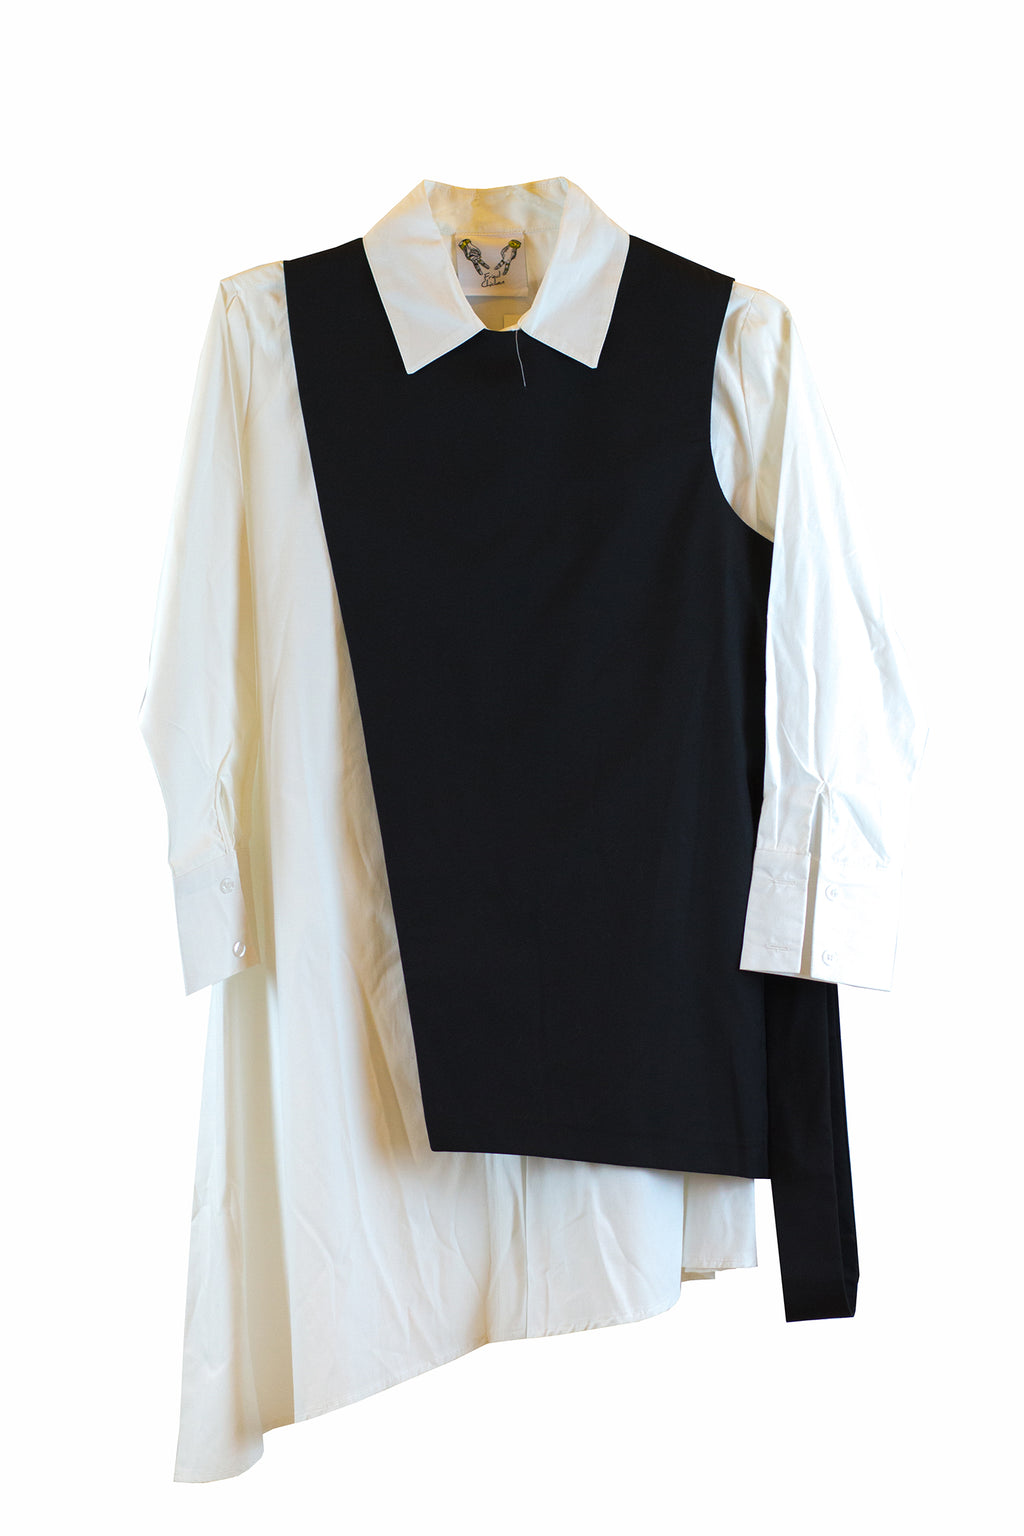 Black sleeveless top with belt and white maxi long sleeve polo